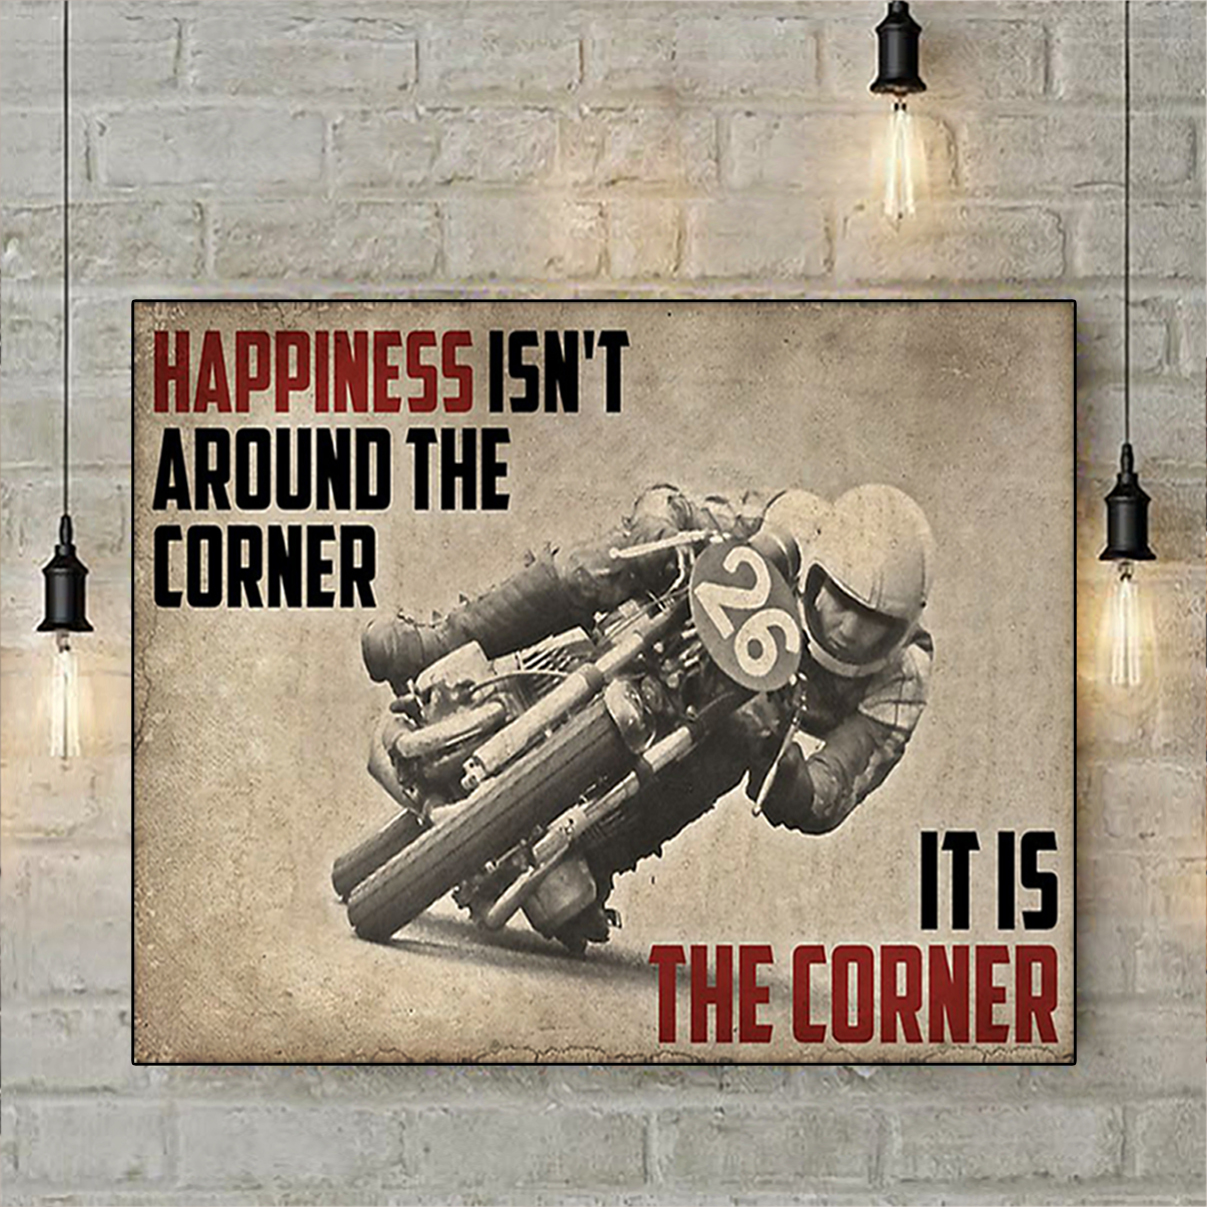 Motorcycles happiness isn't around the corner poster A3